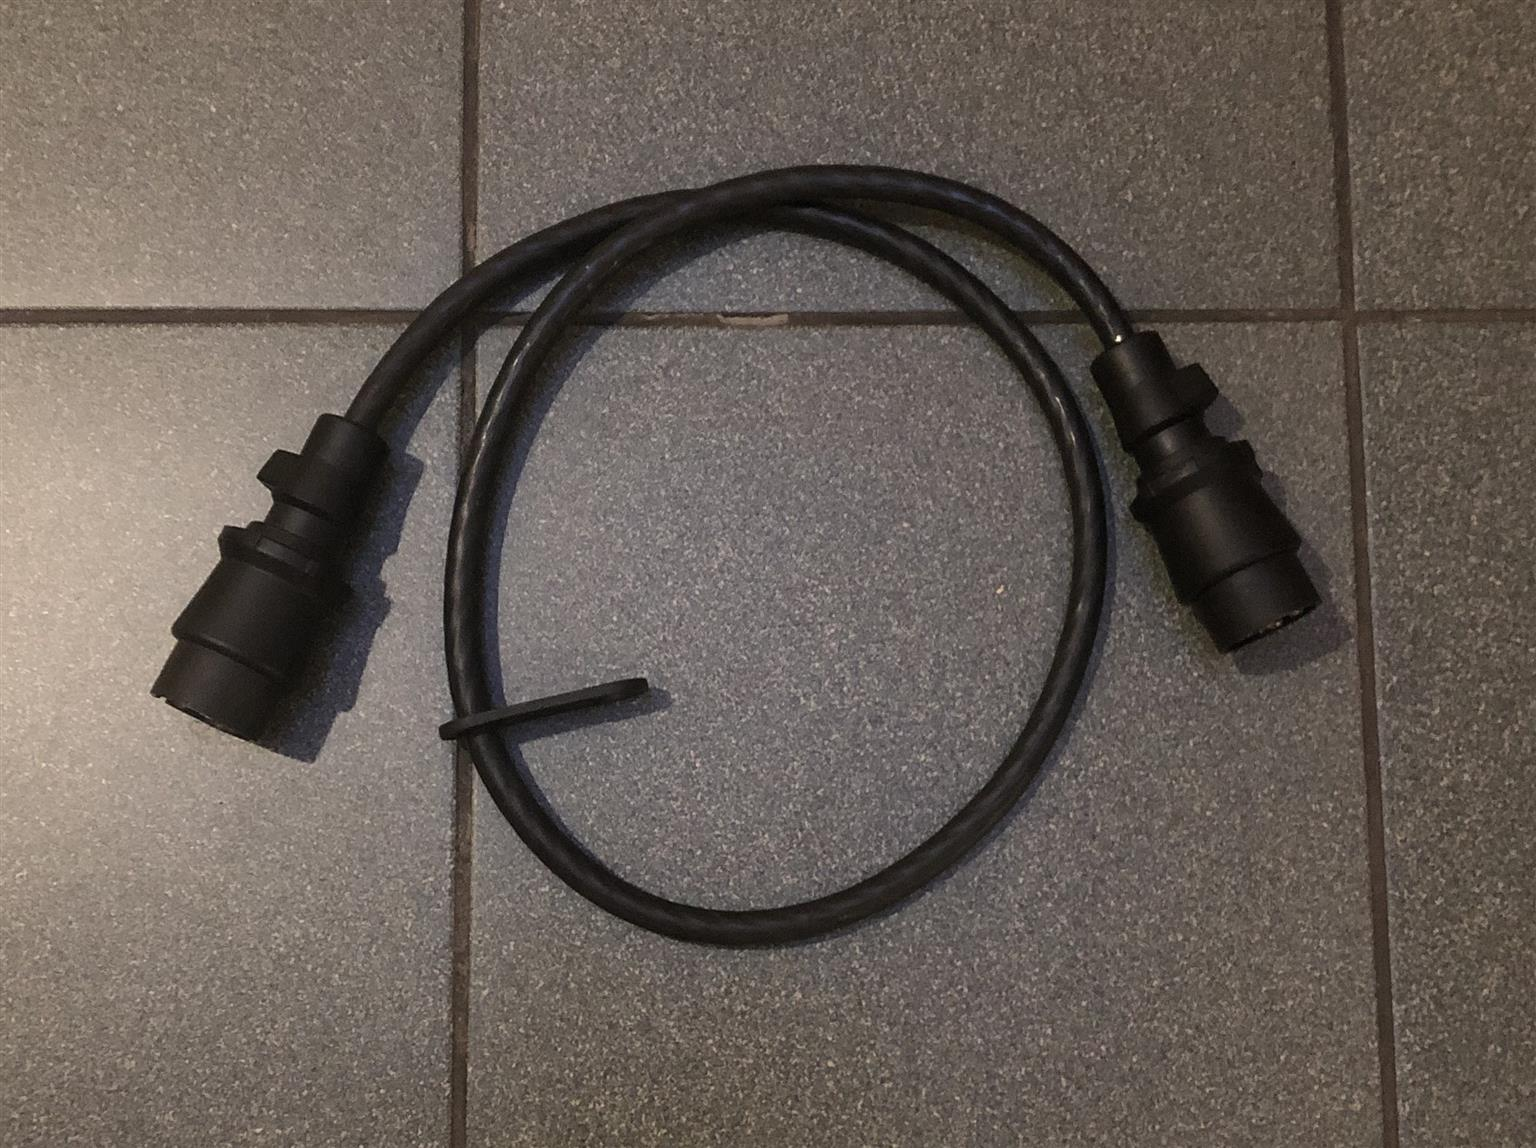 Trailer lights cable male to male South African type